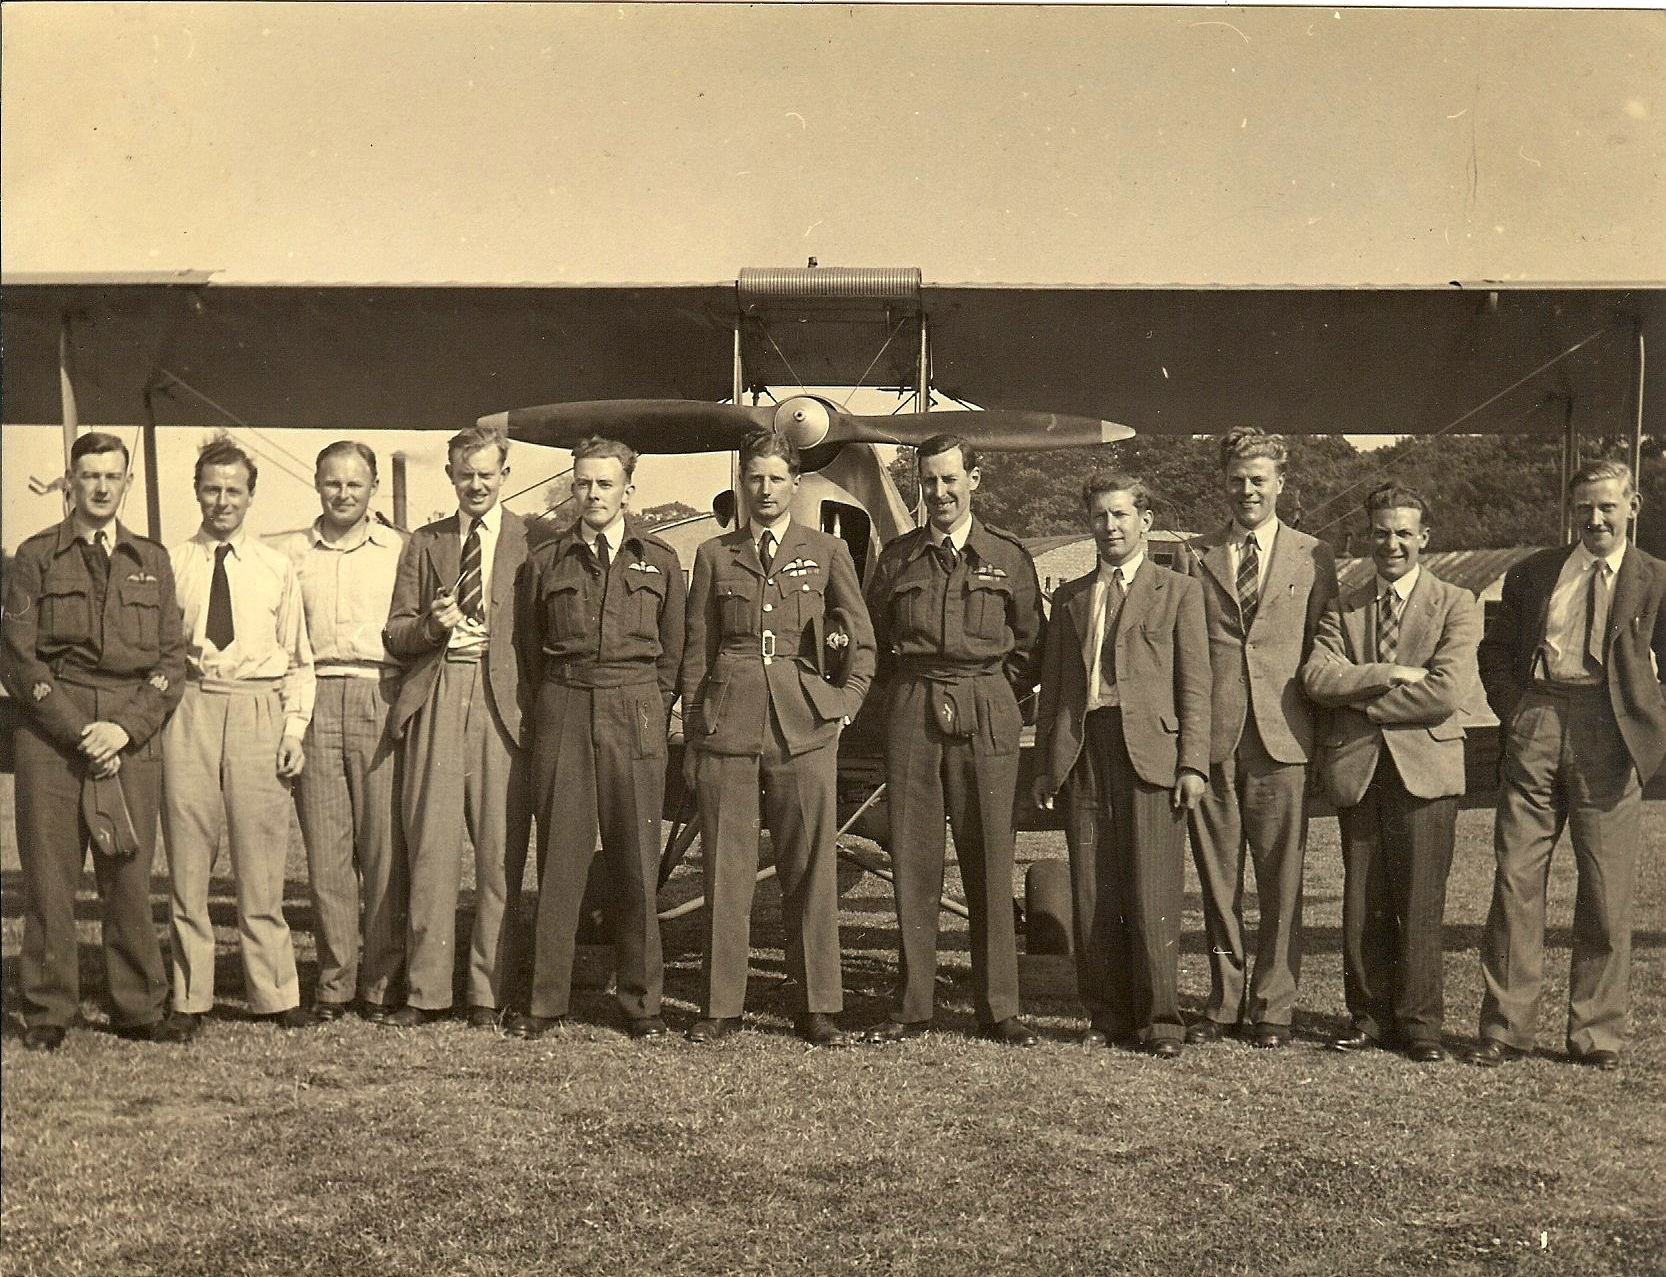 Dennis Higton (3rd from right) and colleagues with an aeroplane, c.1940s